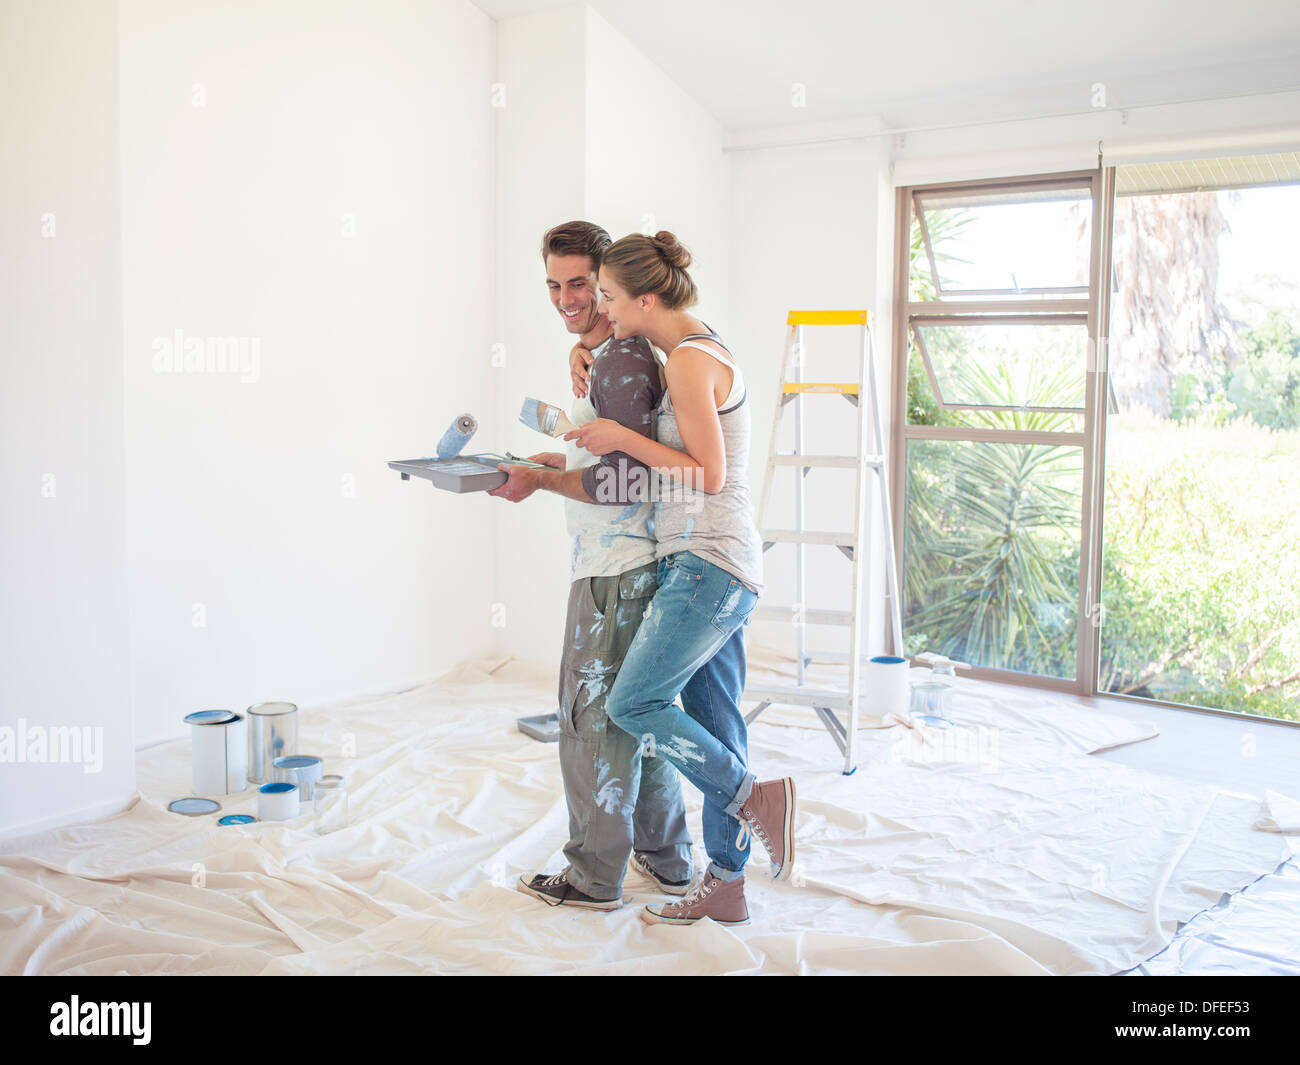 Couple painting walls - Stock Image